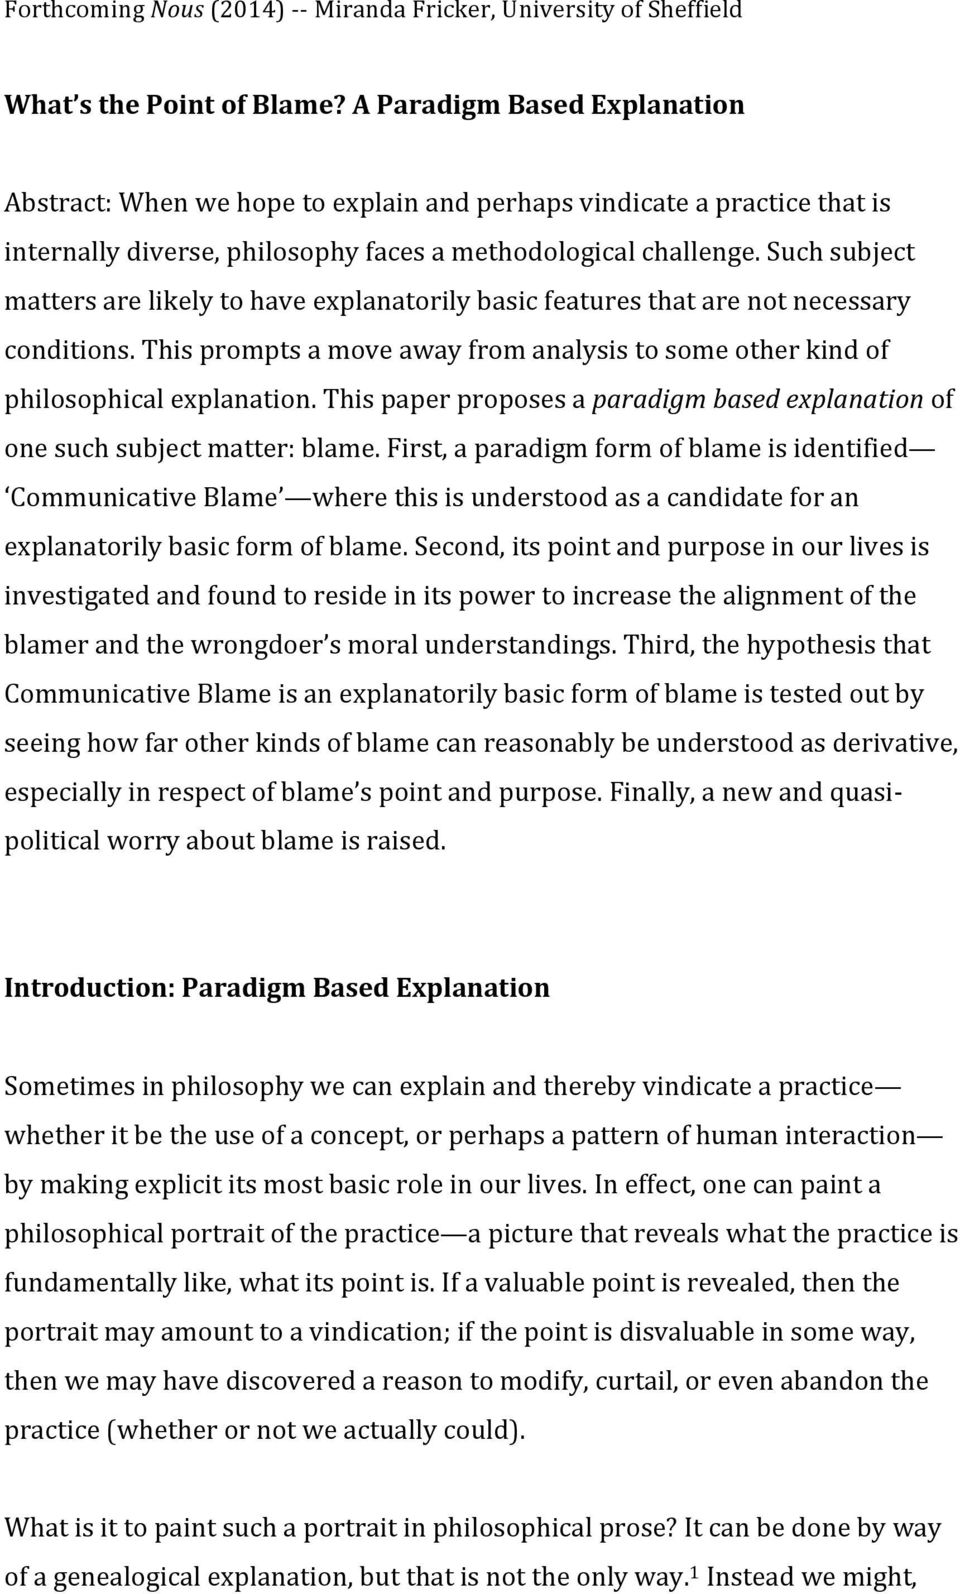 Such subject matters are likely to have explanatorily basic features that are not necessary conditions. This prompts a move away from analysis to some other kind of philosophical explanation.